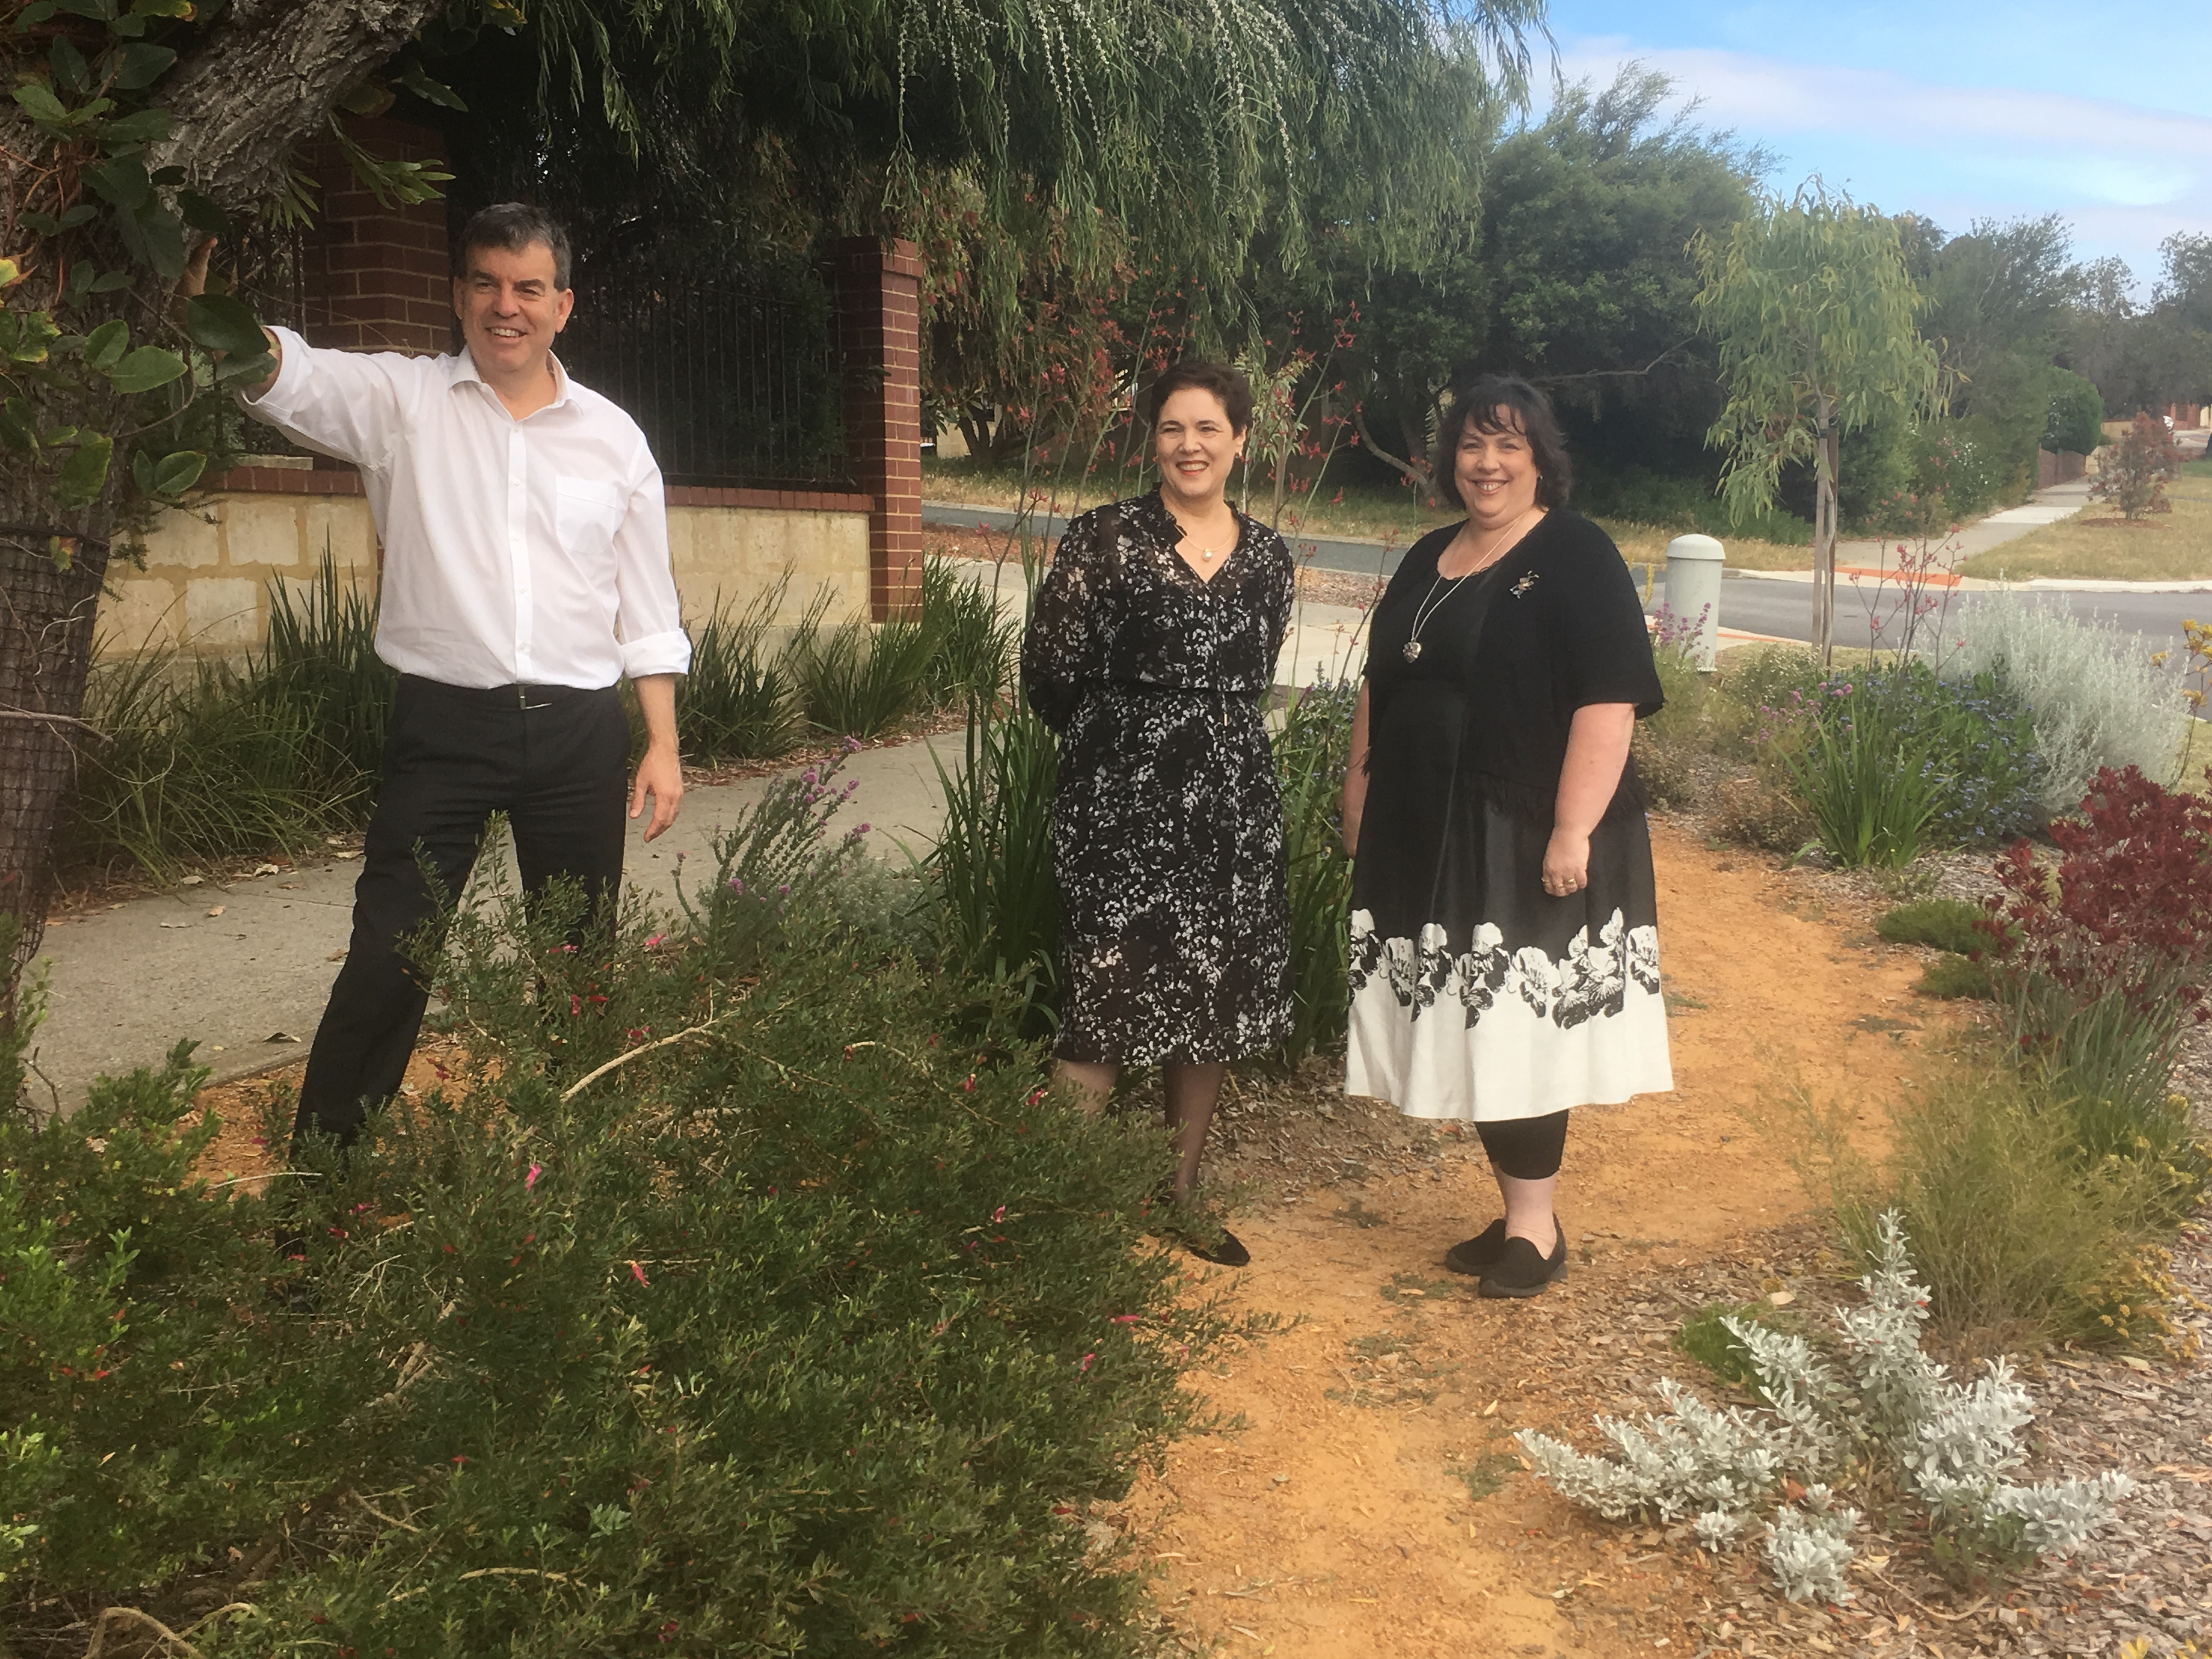 Successful verge transformed with help from the Waterwise Verge Incentive Scheme in the Town of Victoria Park